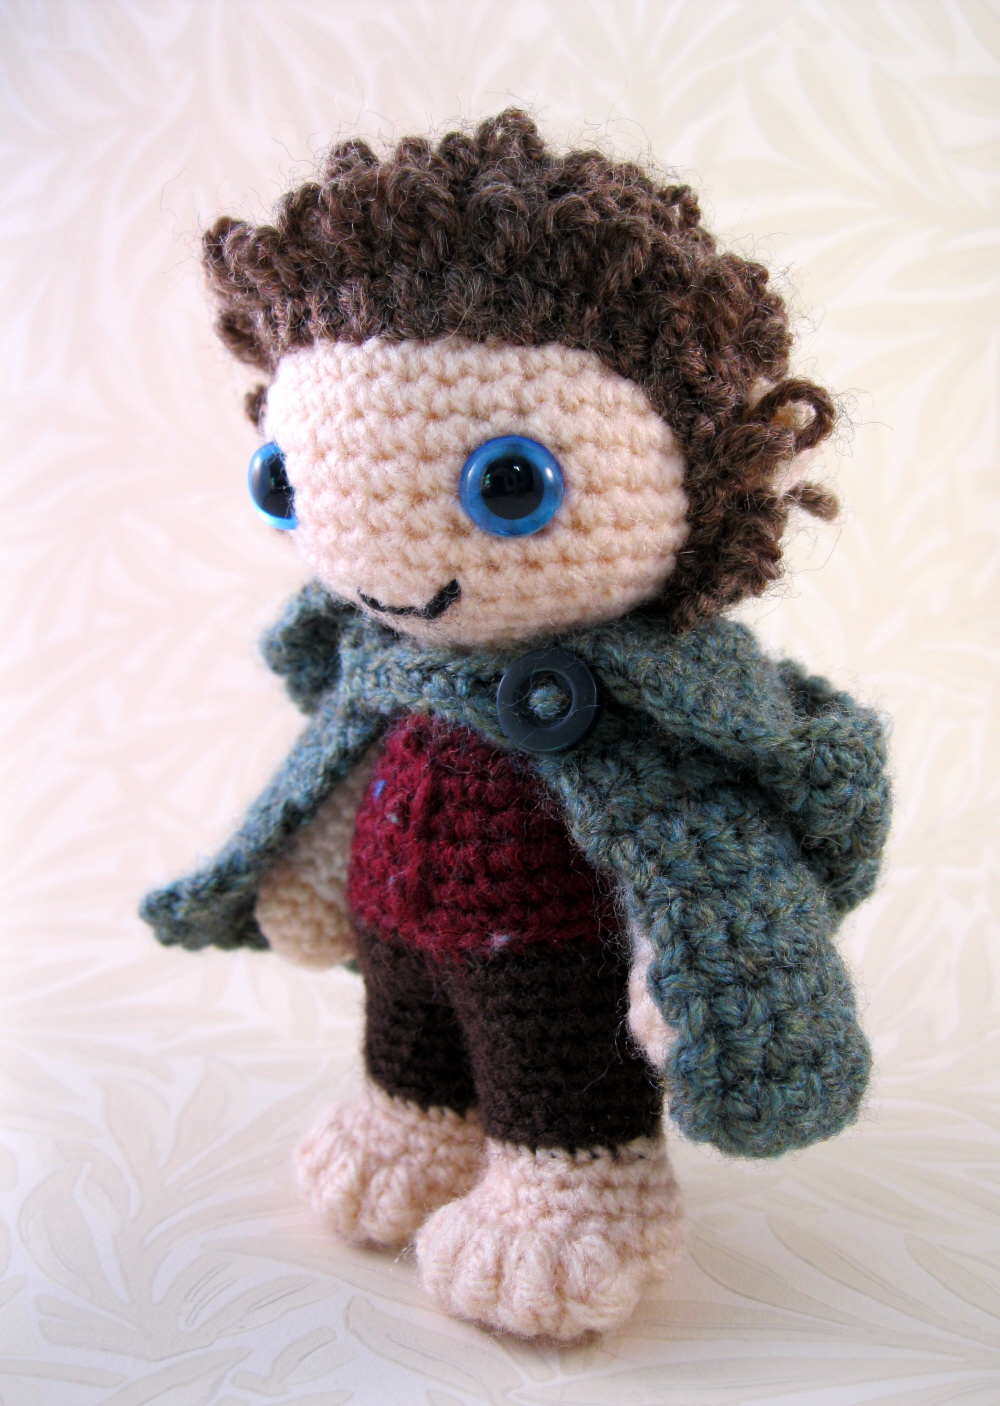 Amigurumi Spiky Hair : LucyRavenscar - Crochet Creatures: Pattern and Yarn Giveaway